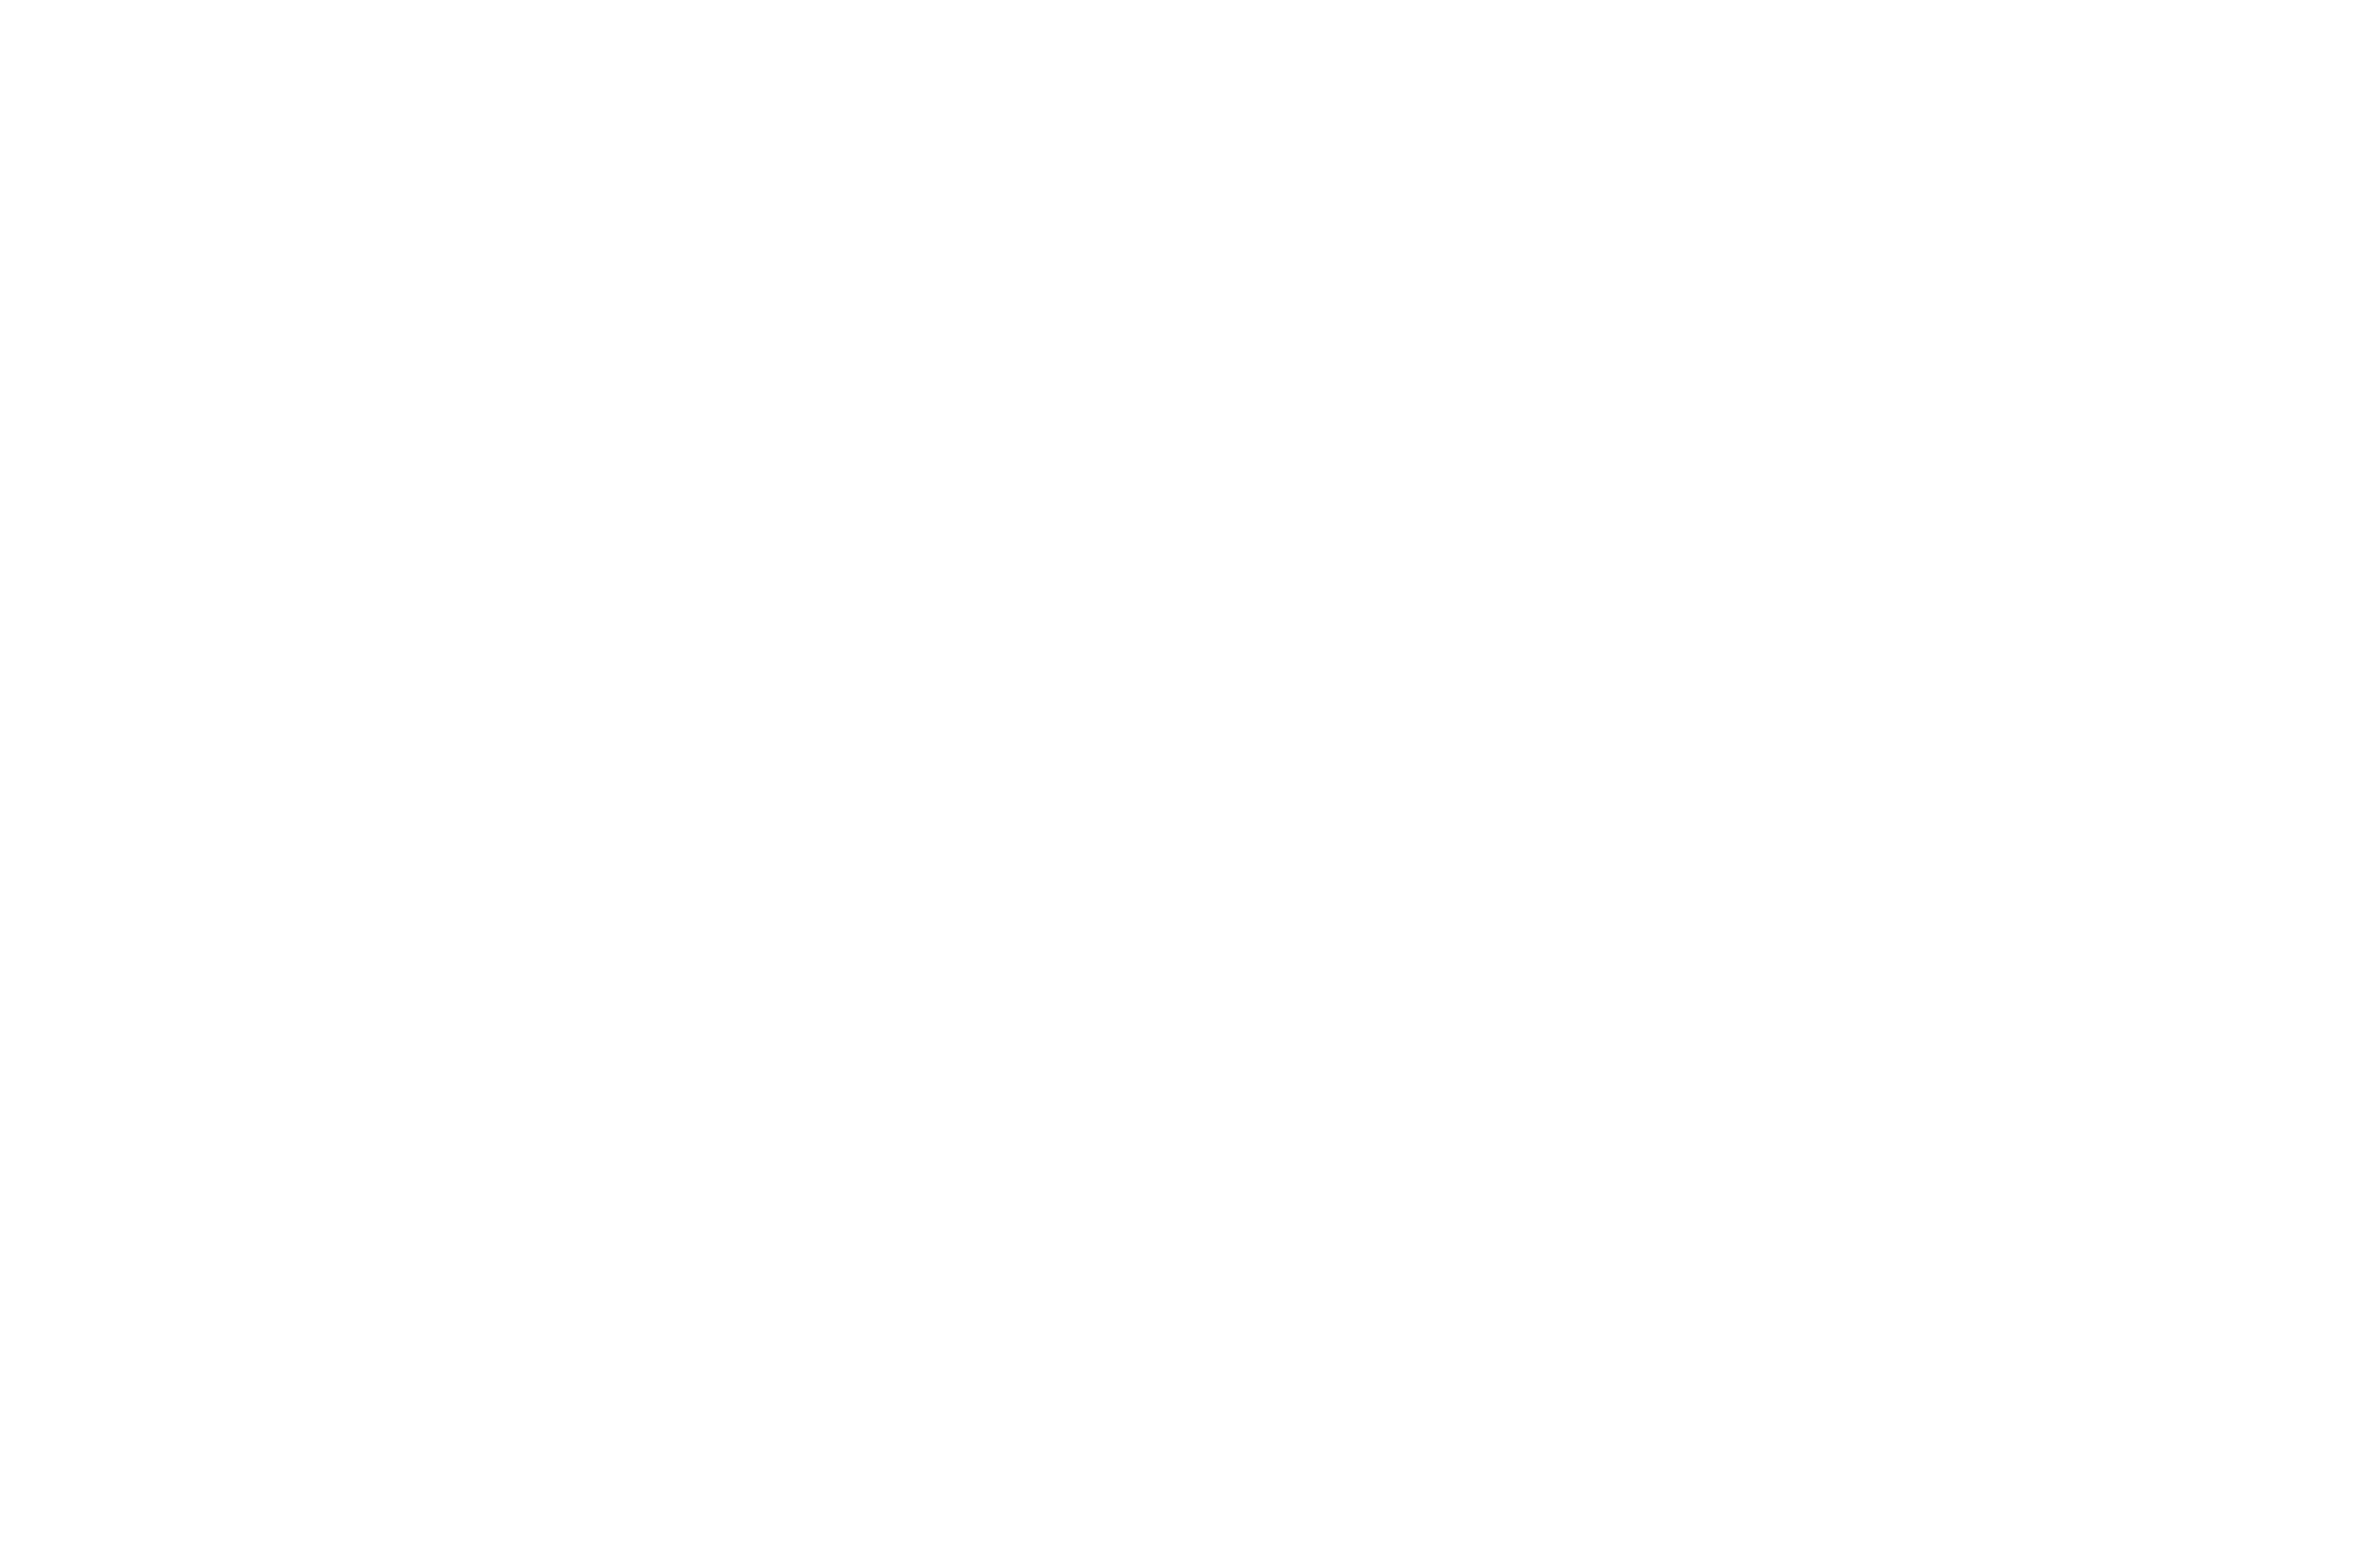 FLICKFAIR Official Selection Laurel